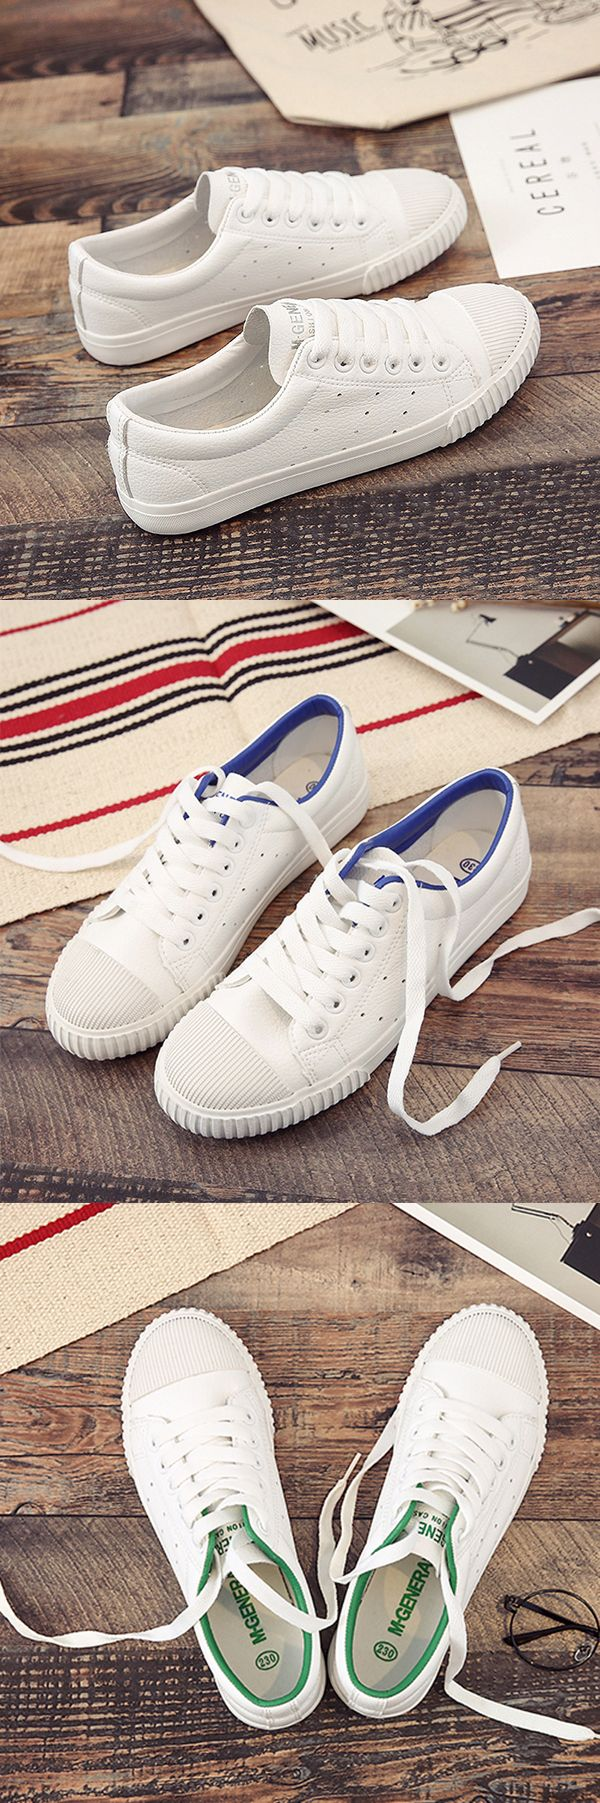 US$21.45  M.GENERAL Comfortable Soft Daily Casual Female Trainers Shoes